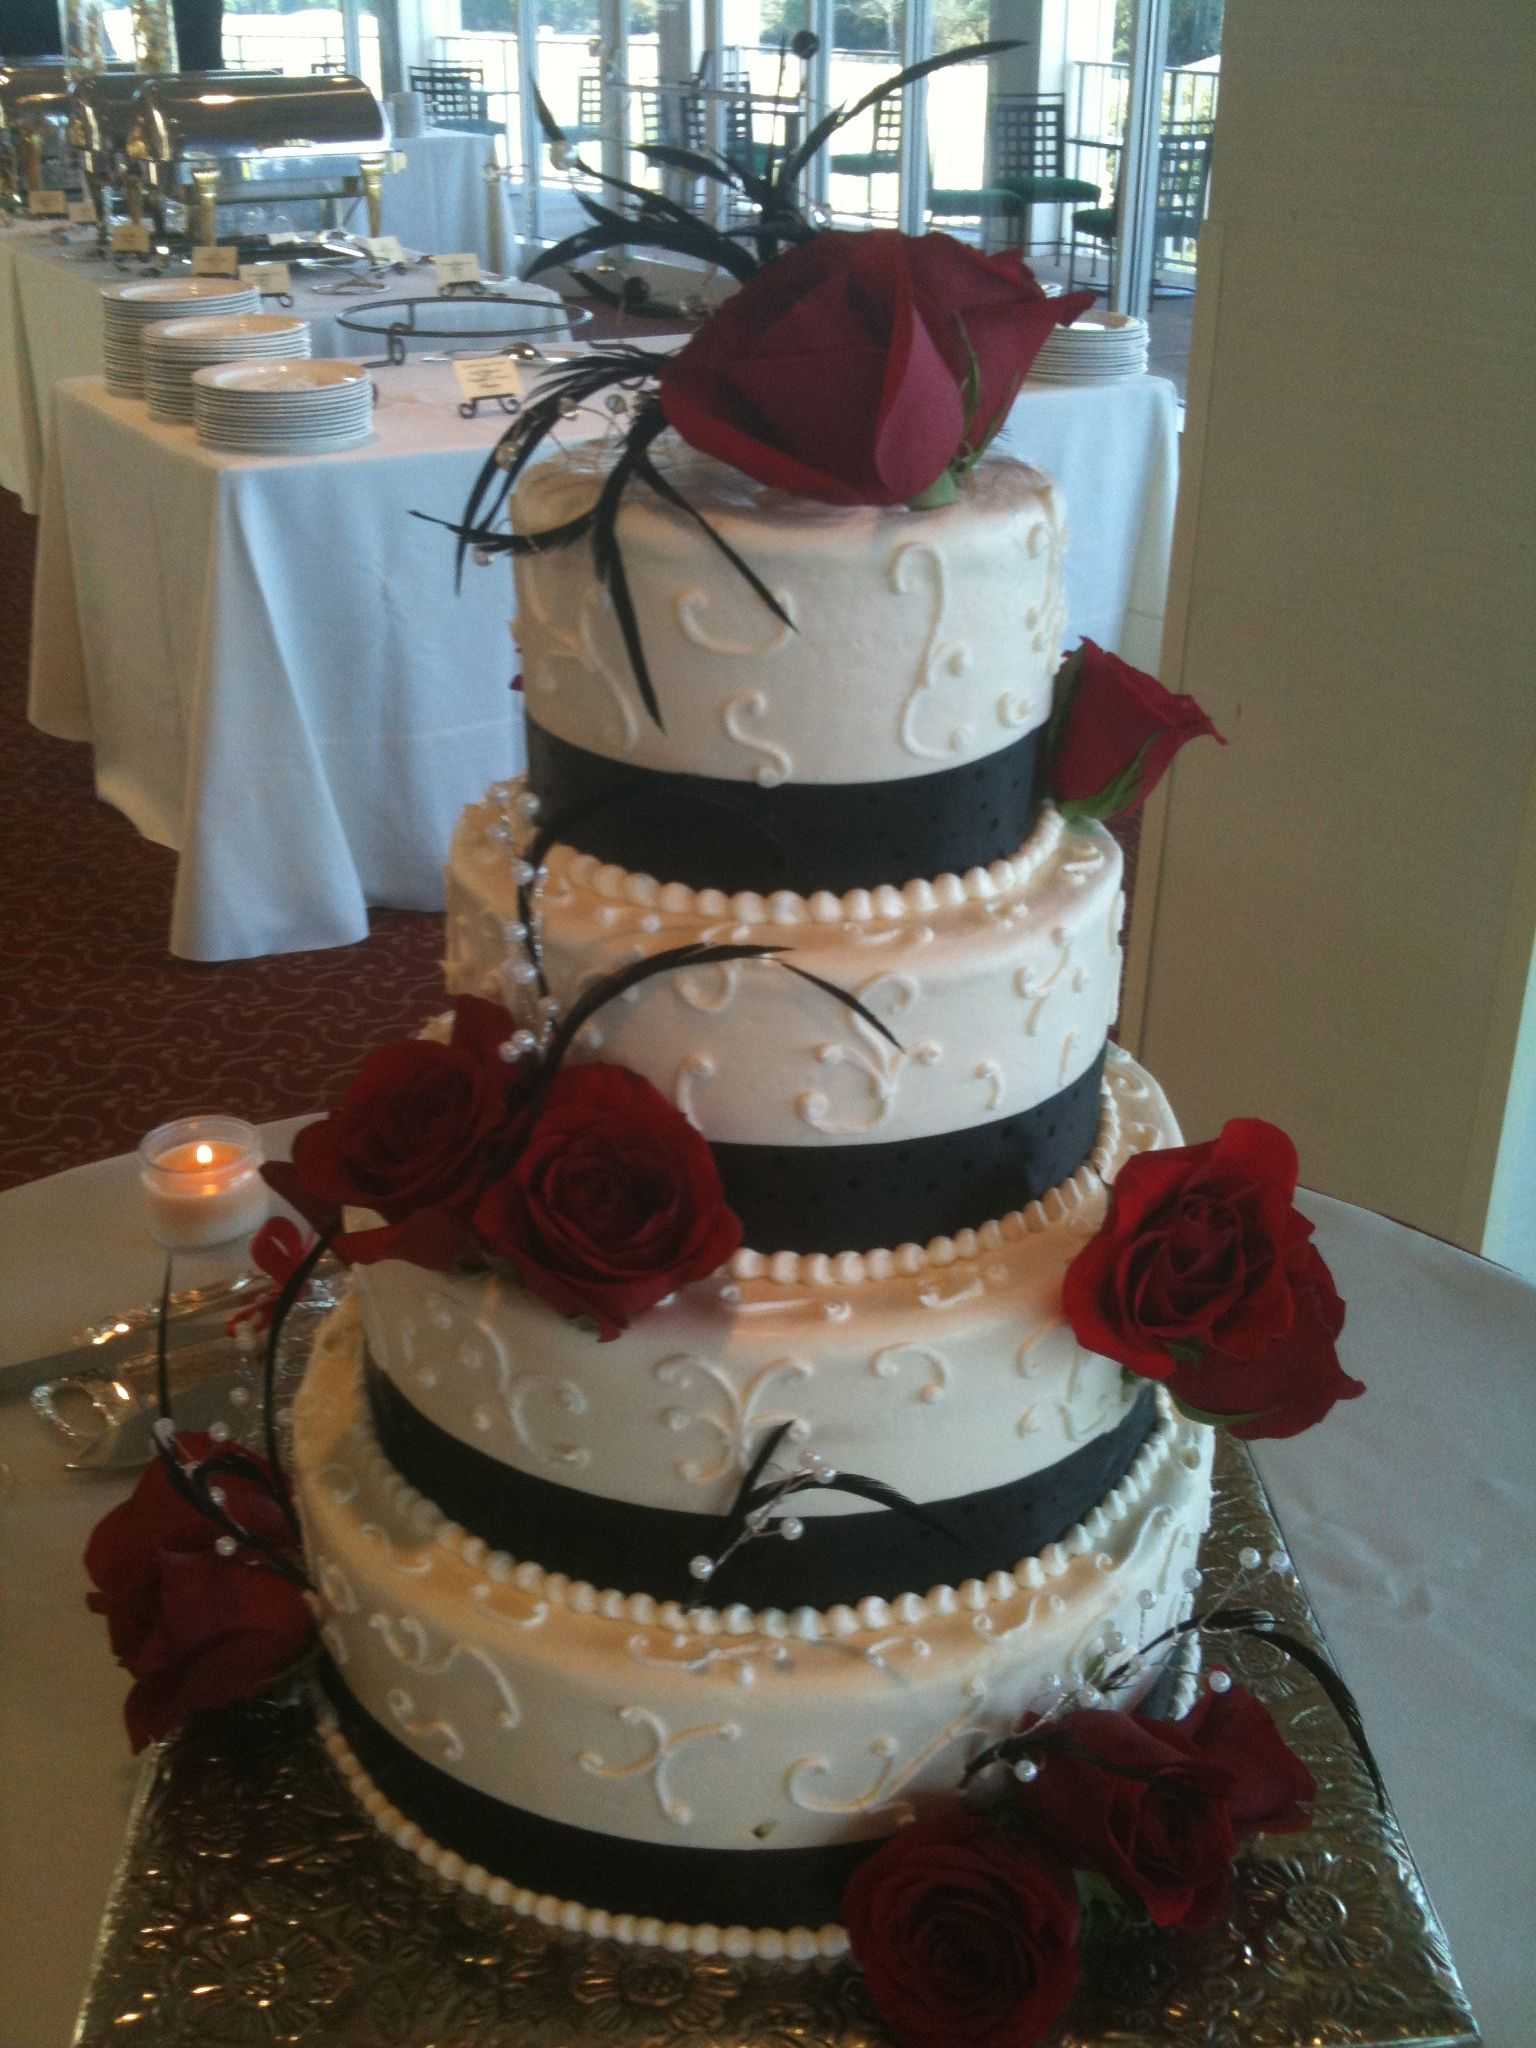 Black And White Cake With Red Accents Wedding Cakes With Cupcakes Buttercream Wedding Cake Black And White Wedding Cake